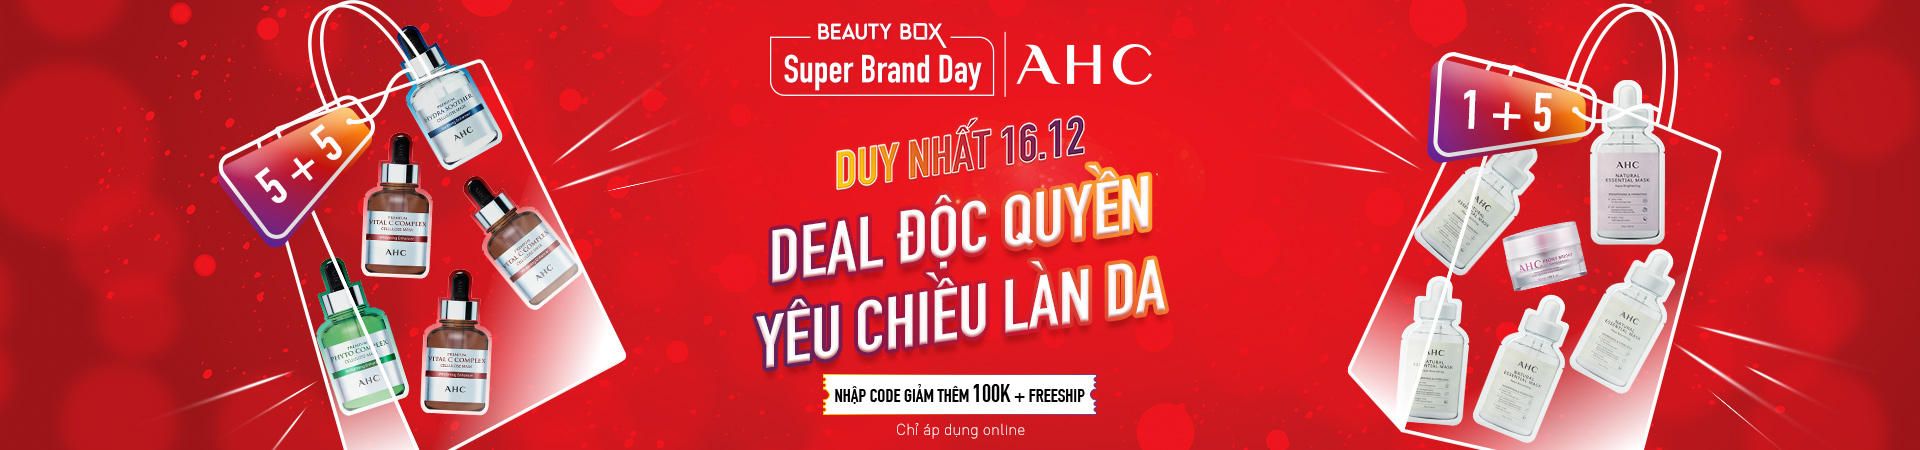 AHC - SUPPER BRAND DAY